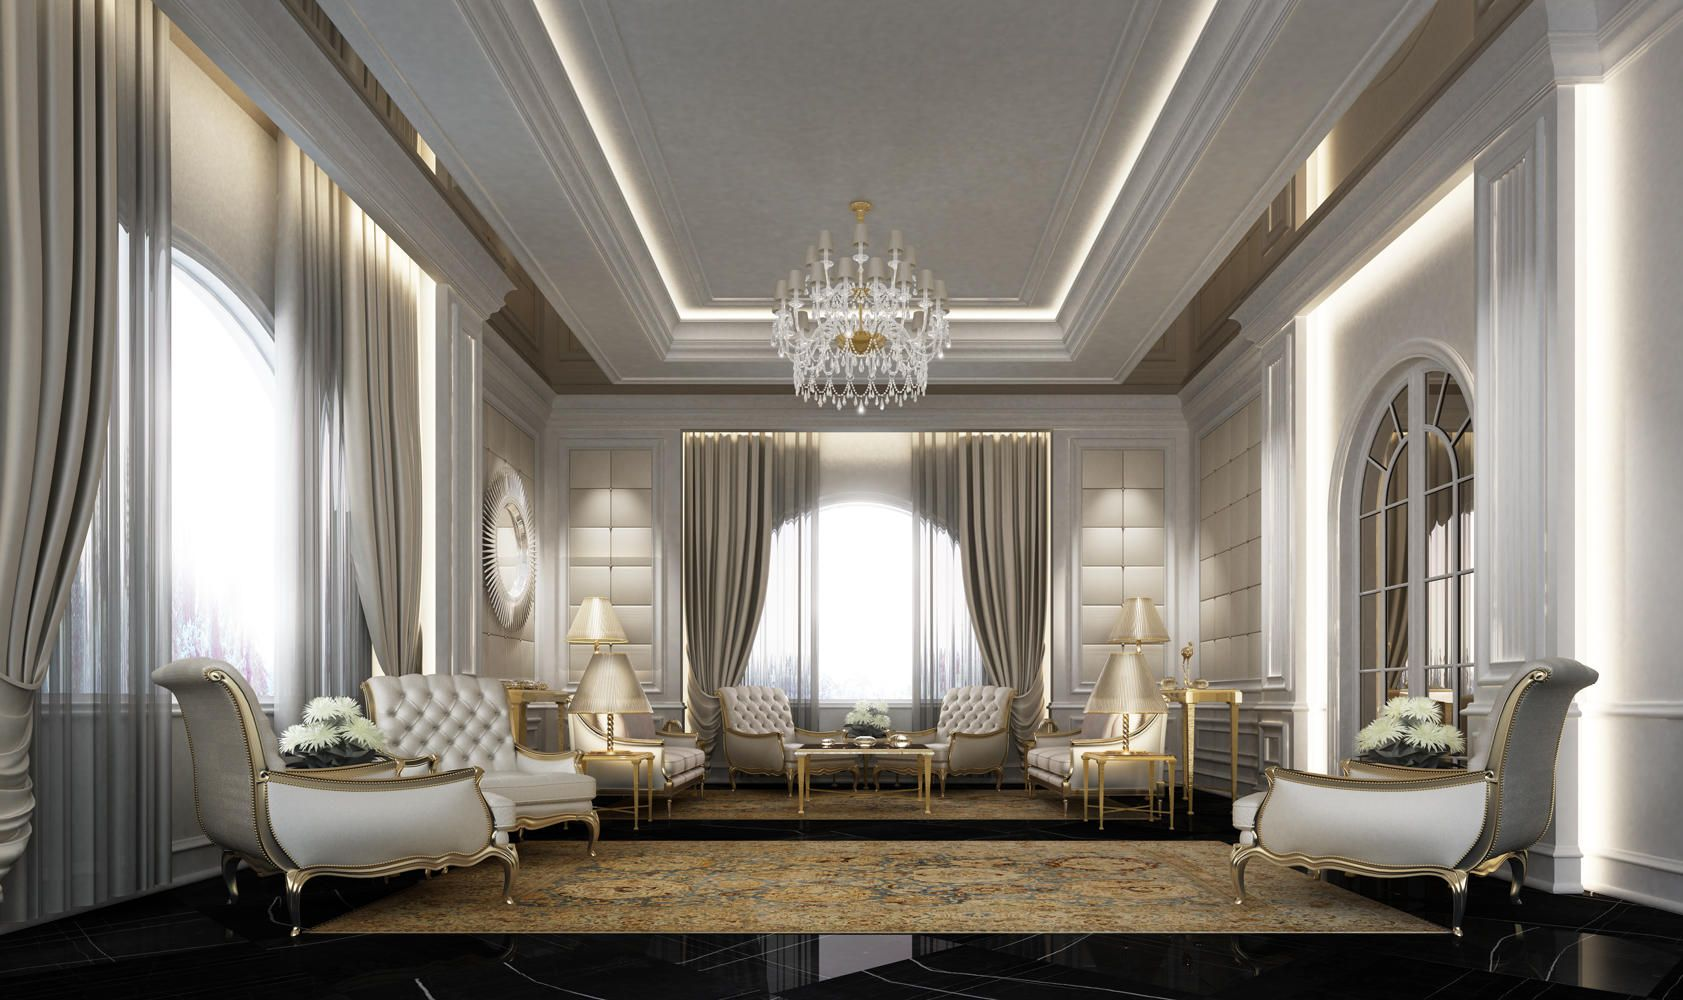 Arabic Majlis Interior Design Decoration Best Decorating Inspiration